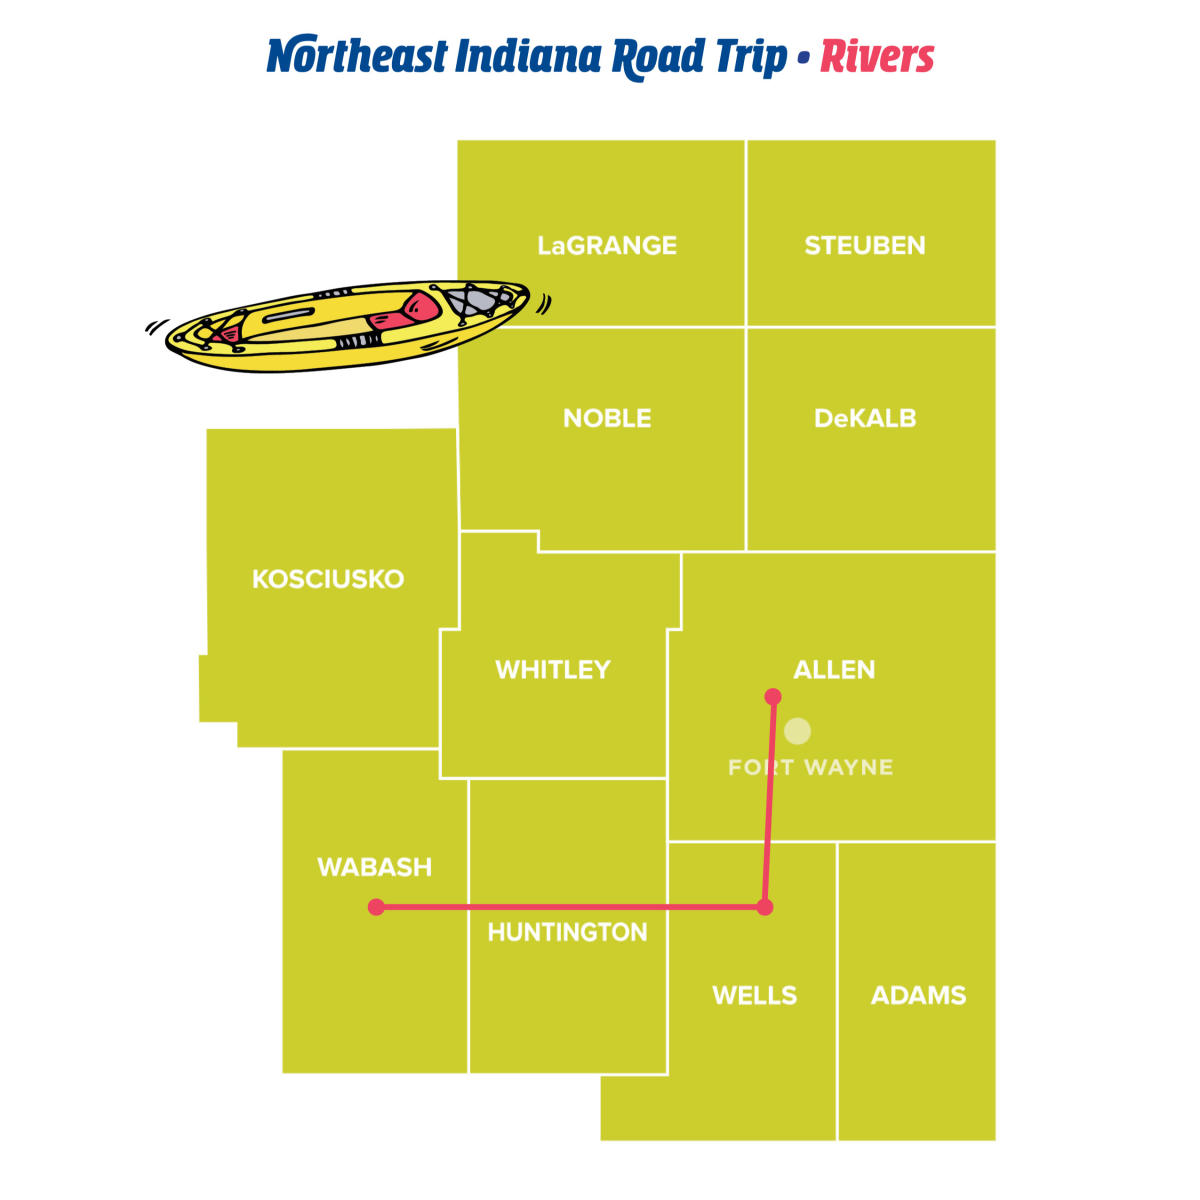 Rivers - Northeast Indiana Road Trips